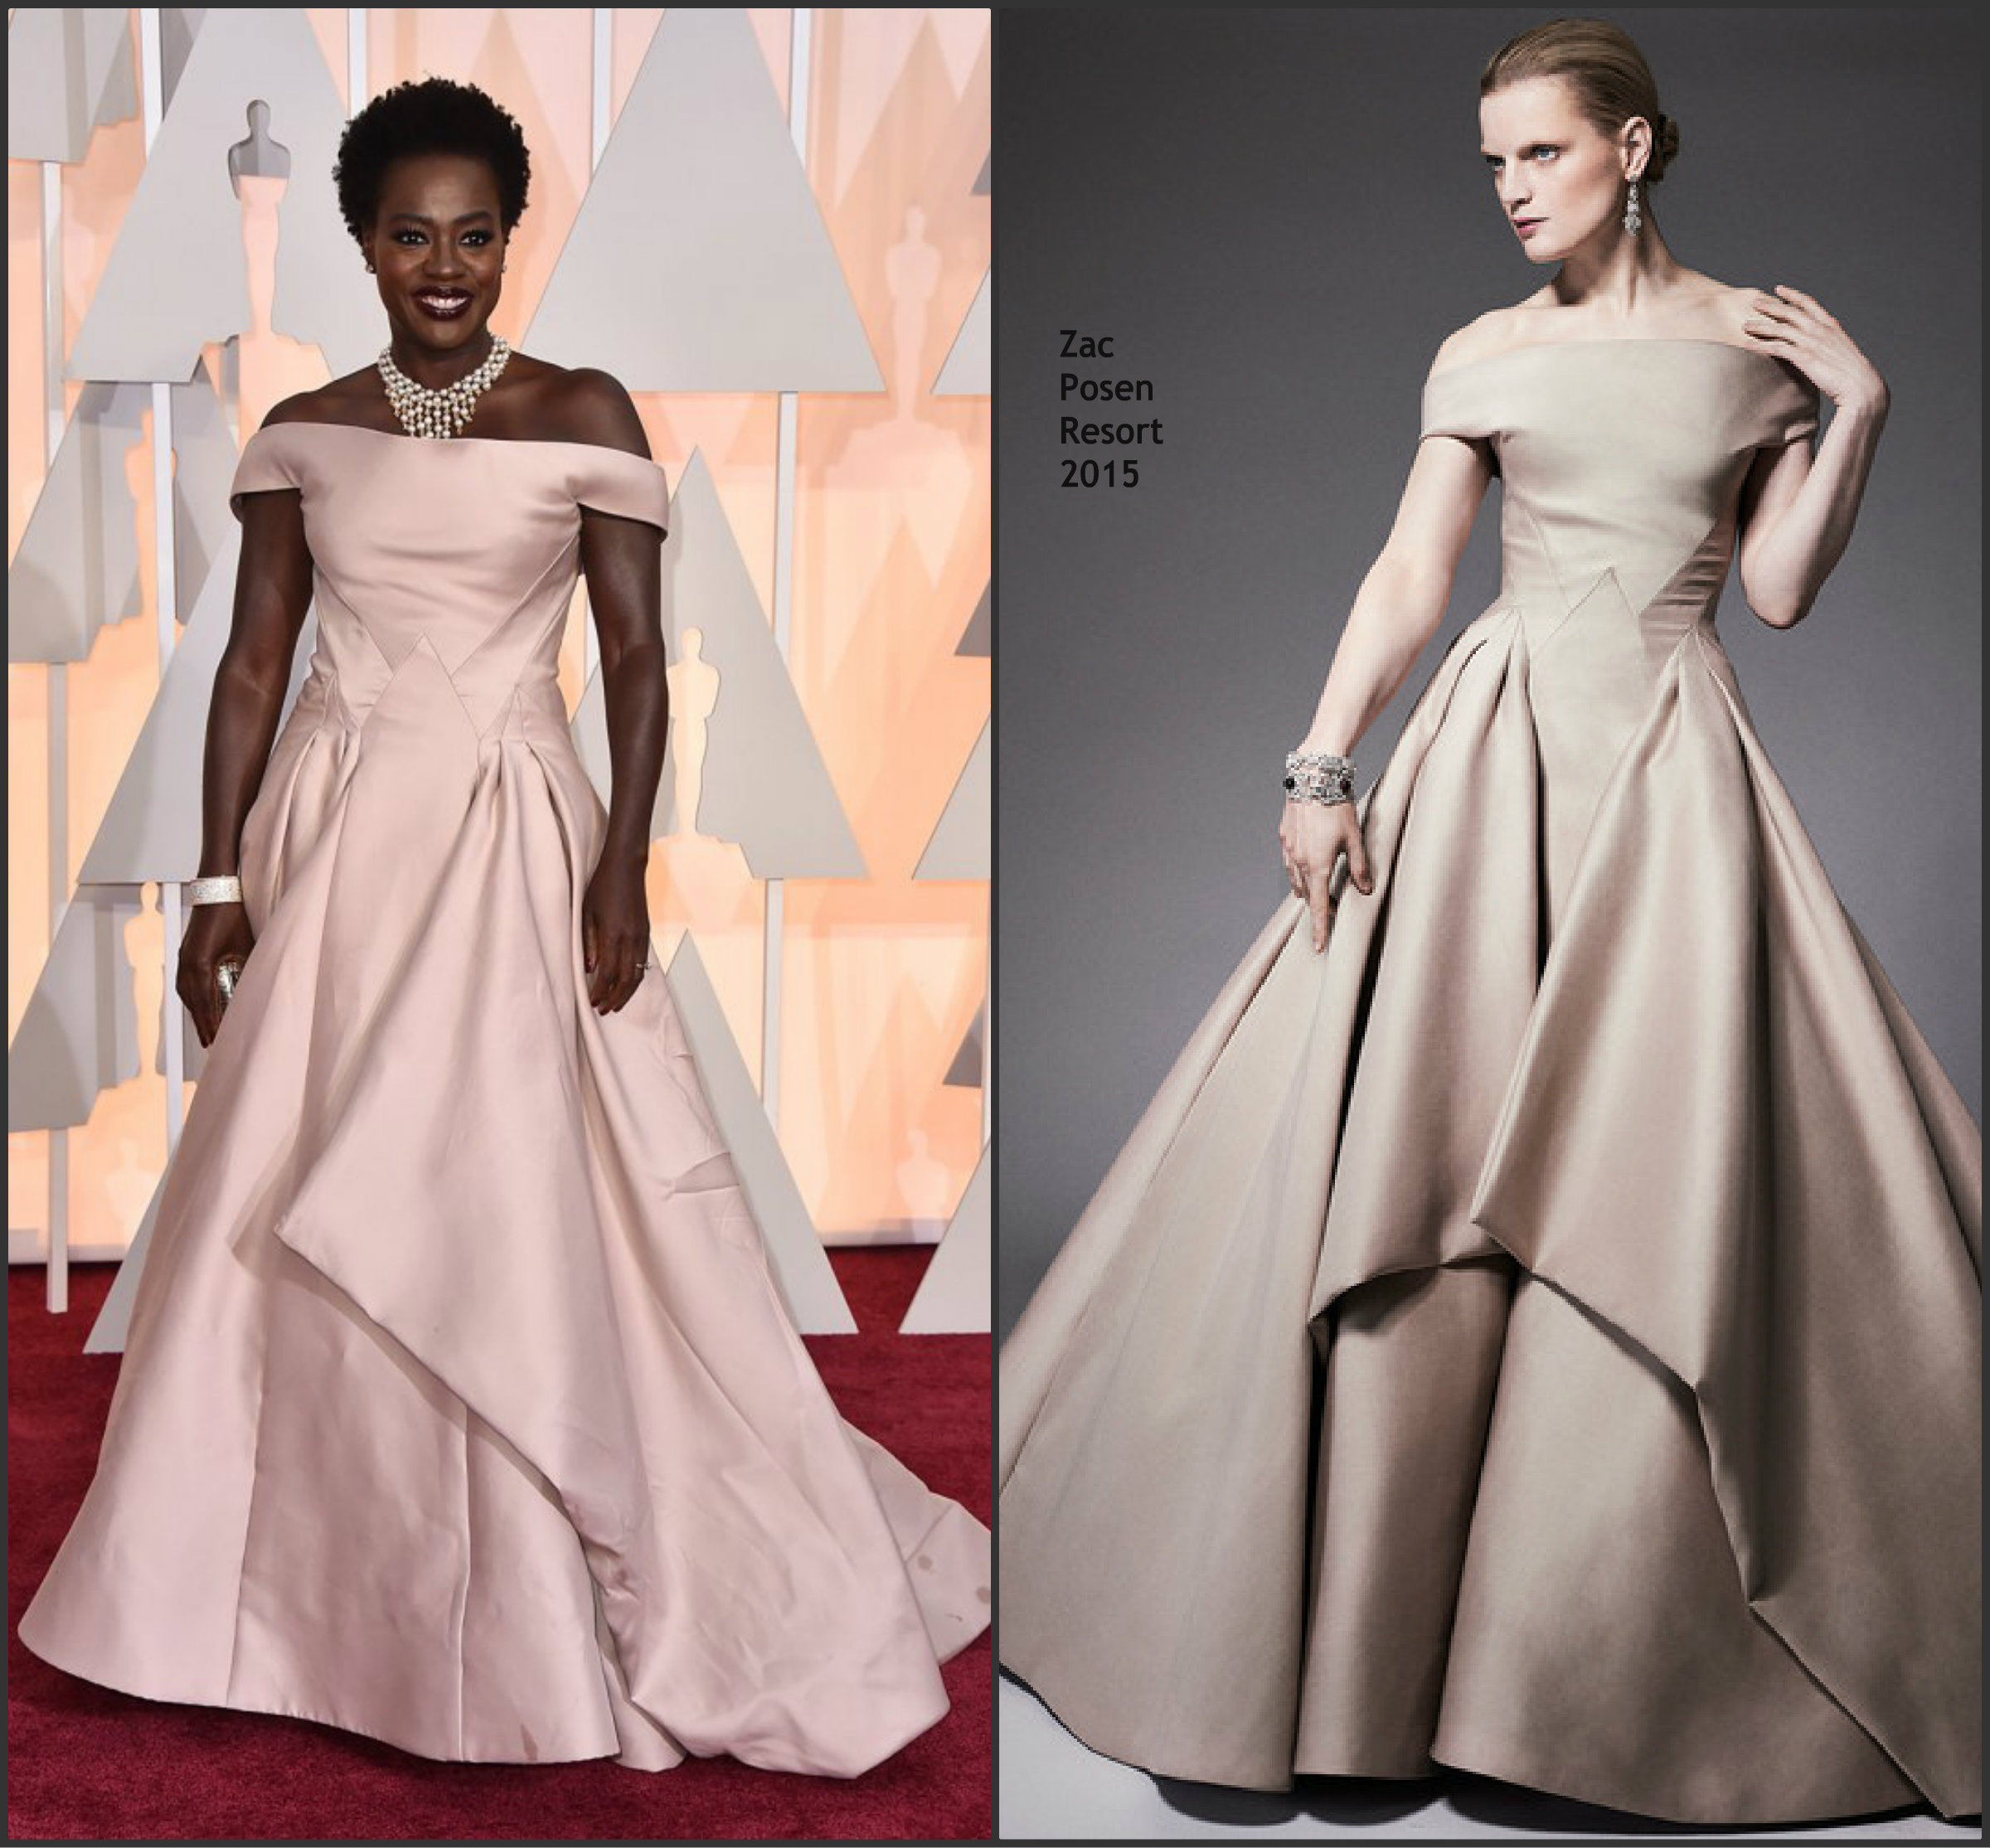 Viola-Davis- In-Zac-Posen- at-the-2015-Oscars